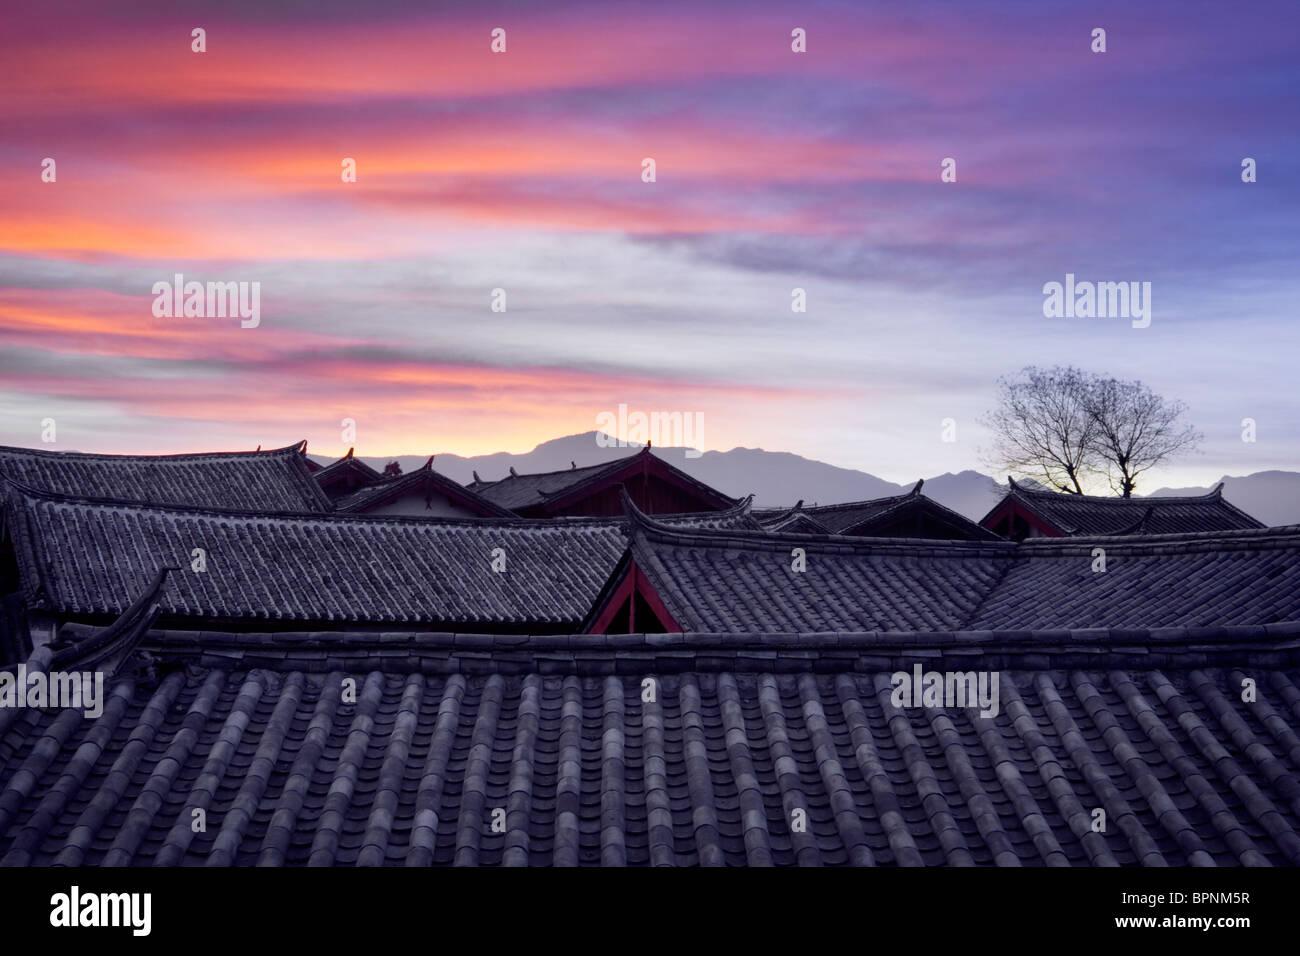 The sun rises on tiled roofs,historic town of Lijiang,UNESCO World Heritage Site,Yunnan Province,People's Republic - Stock Image